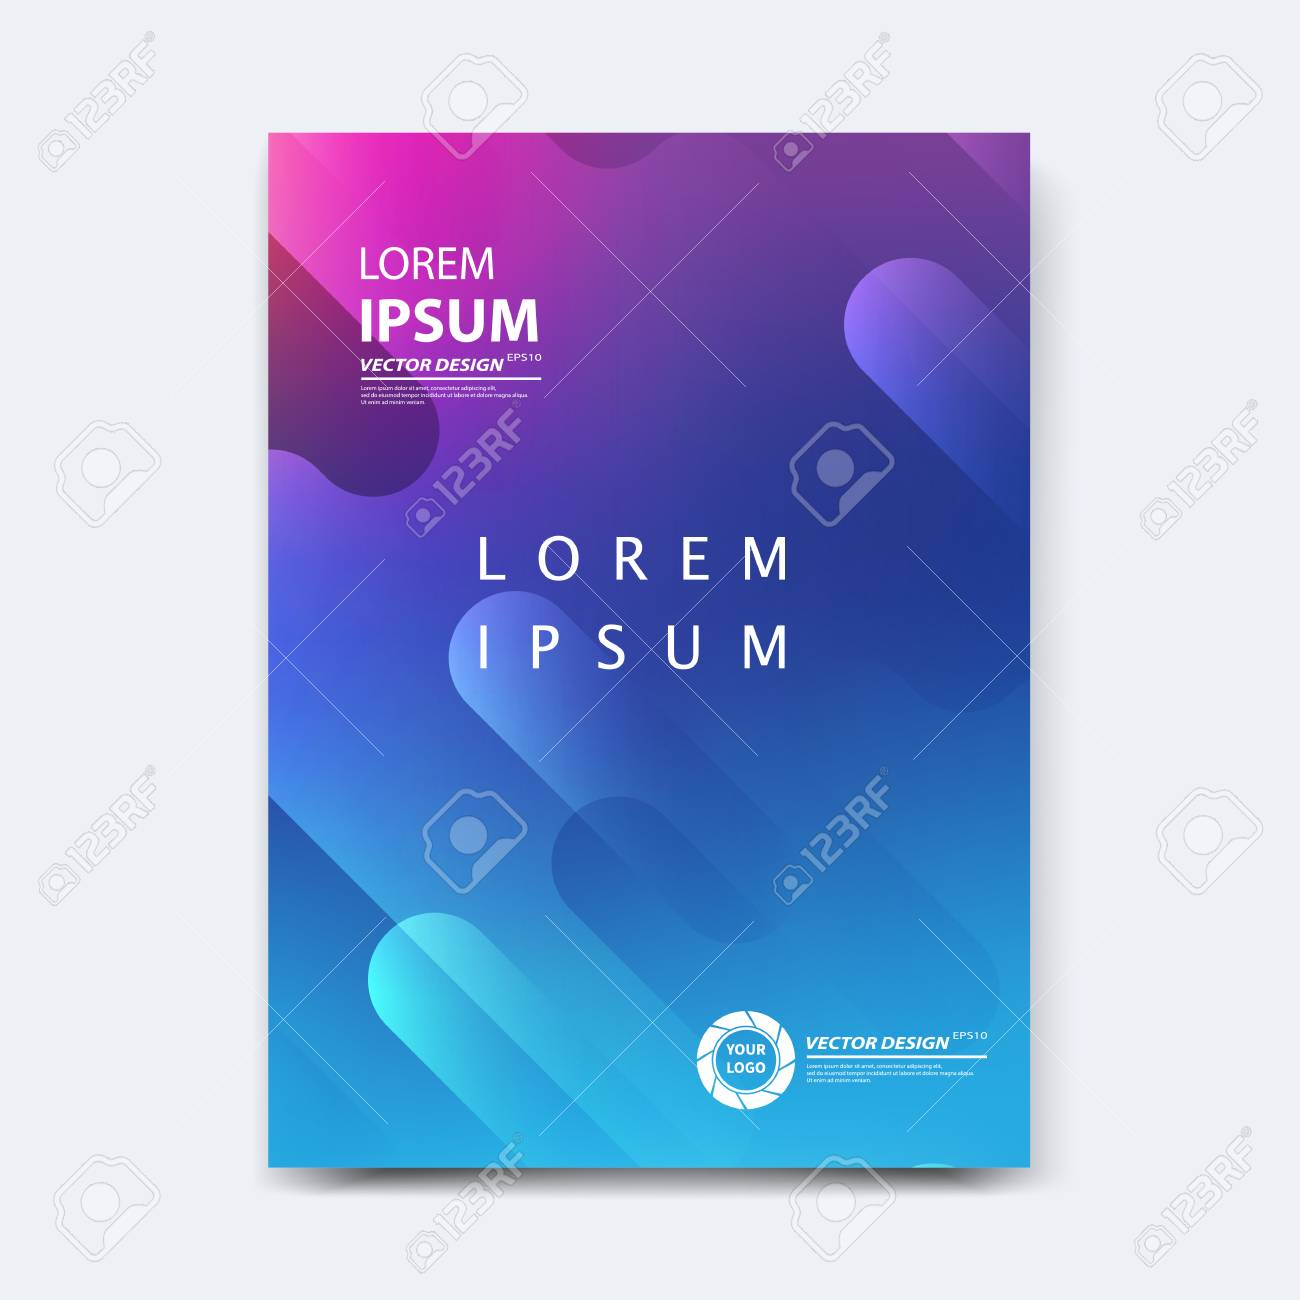 Abstract vector design for cover, poster, banner, flyer, business card, magazine annual report, title page, brochure template layout or booklet .A4 size with geometric shapes on white background. - 104581716